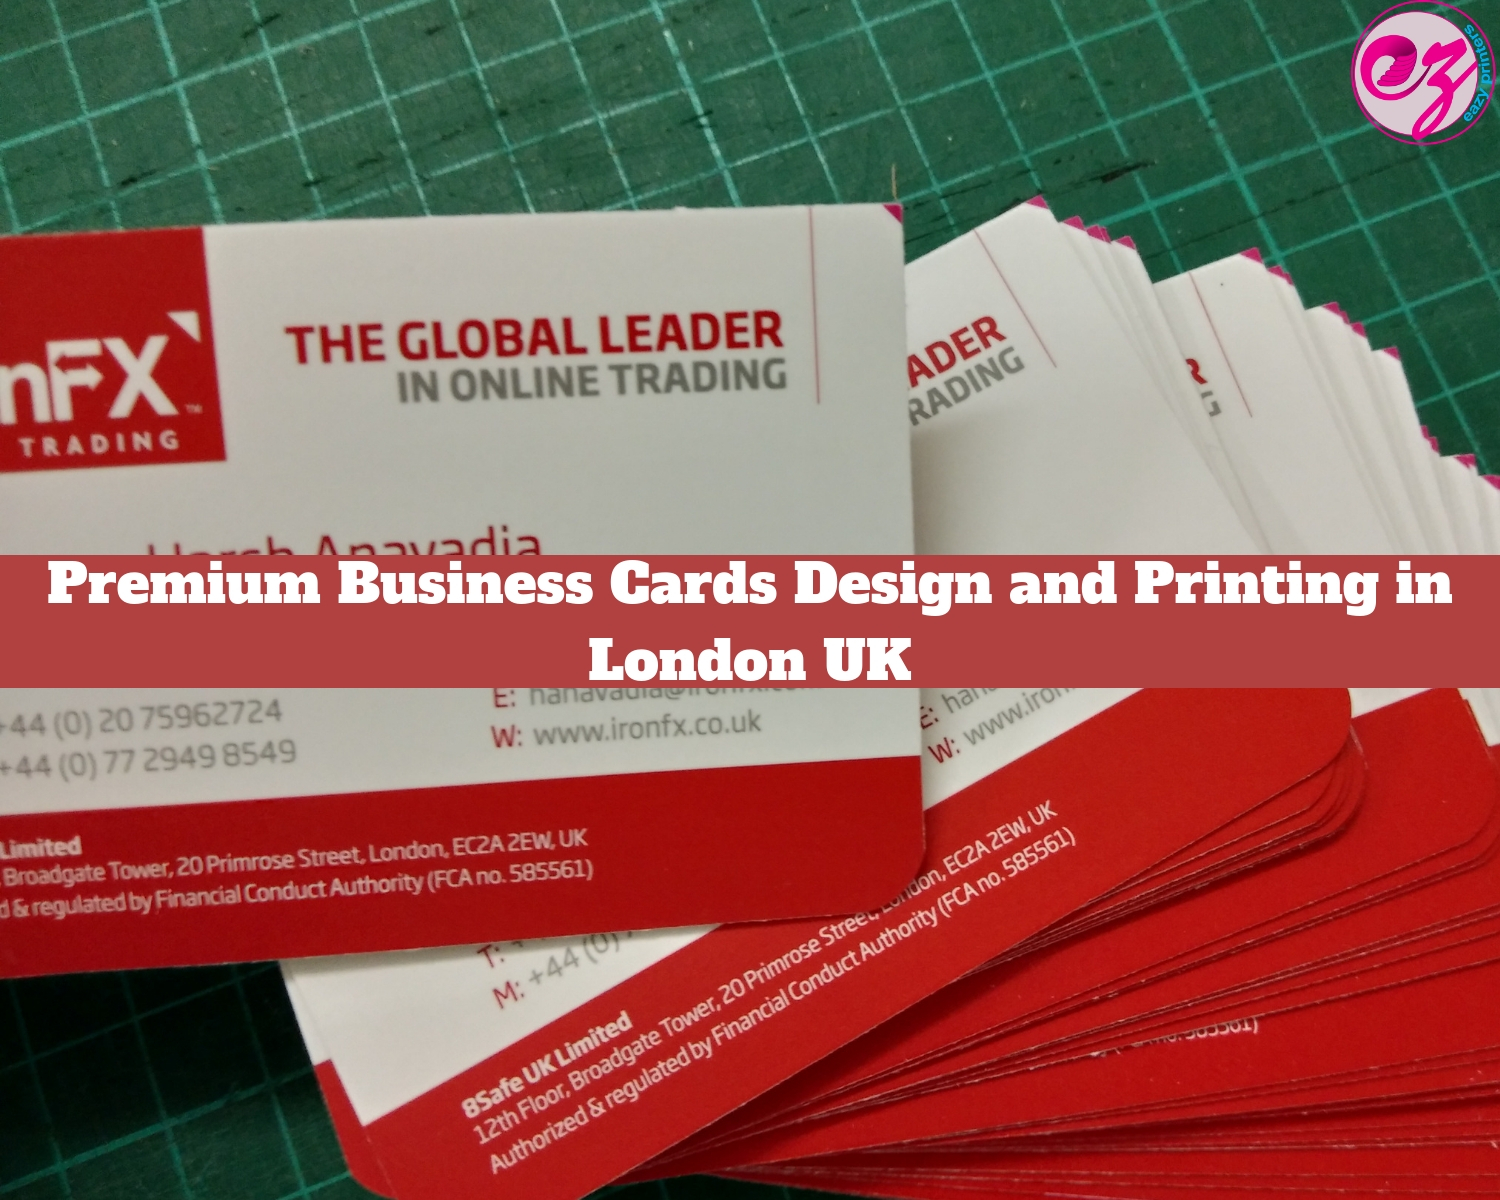 Premium Business Cards Design And Printing In London Uk